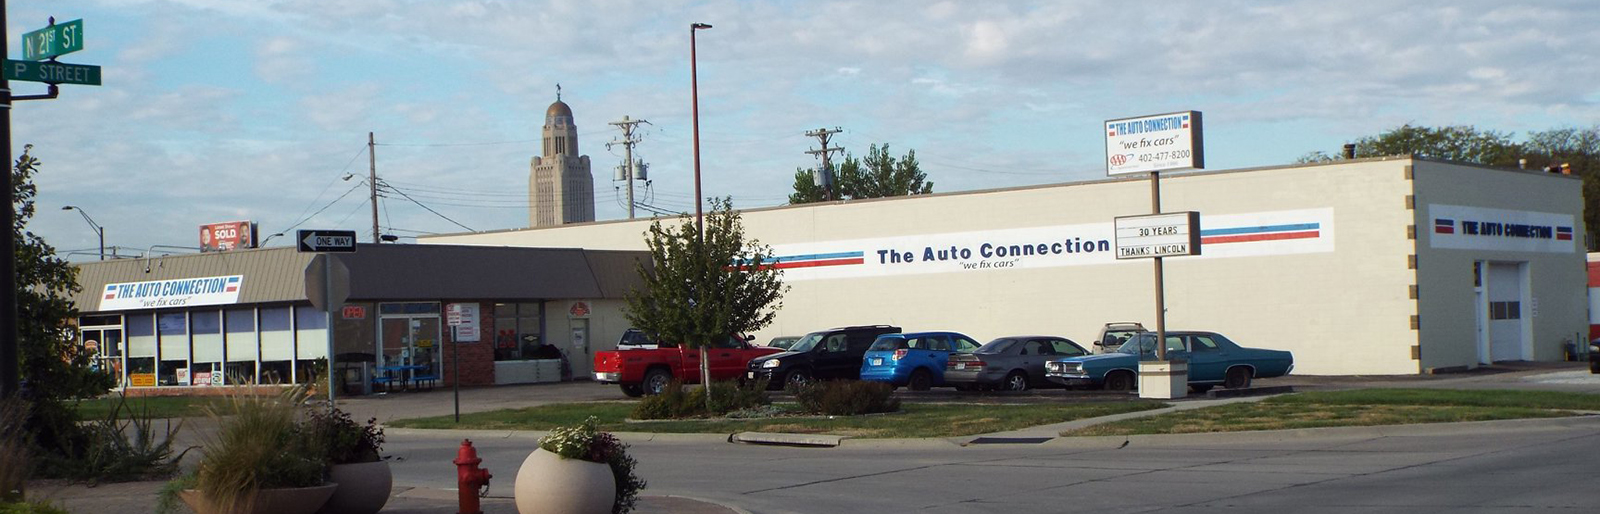 vehicles repaired at auto connection LINCOLN, NE